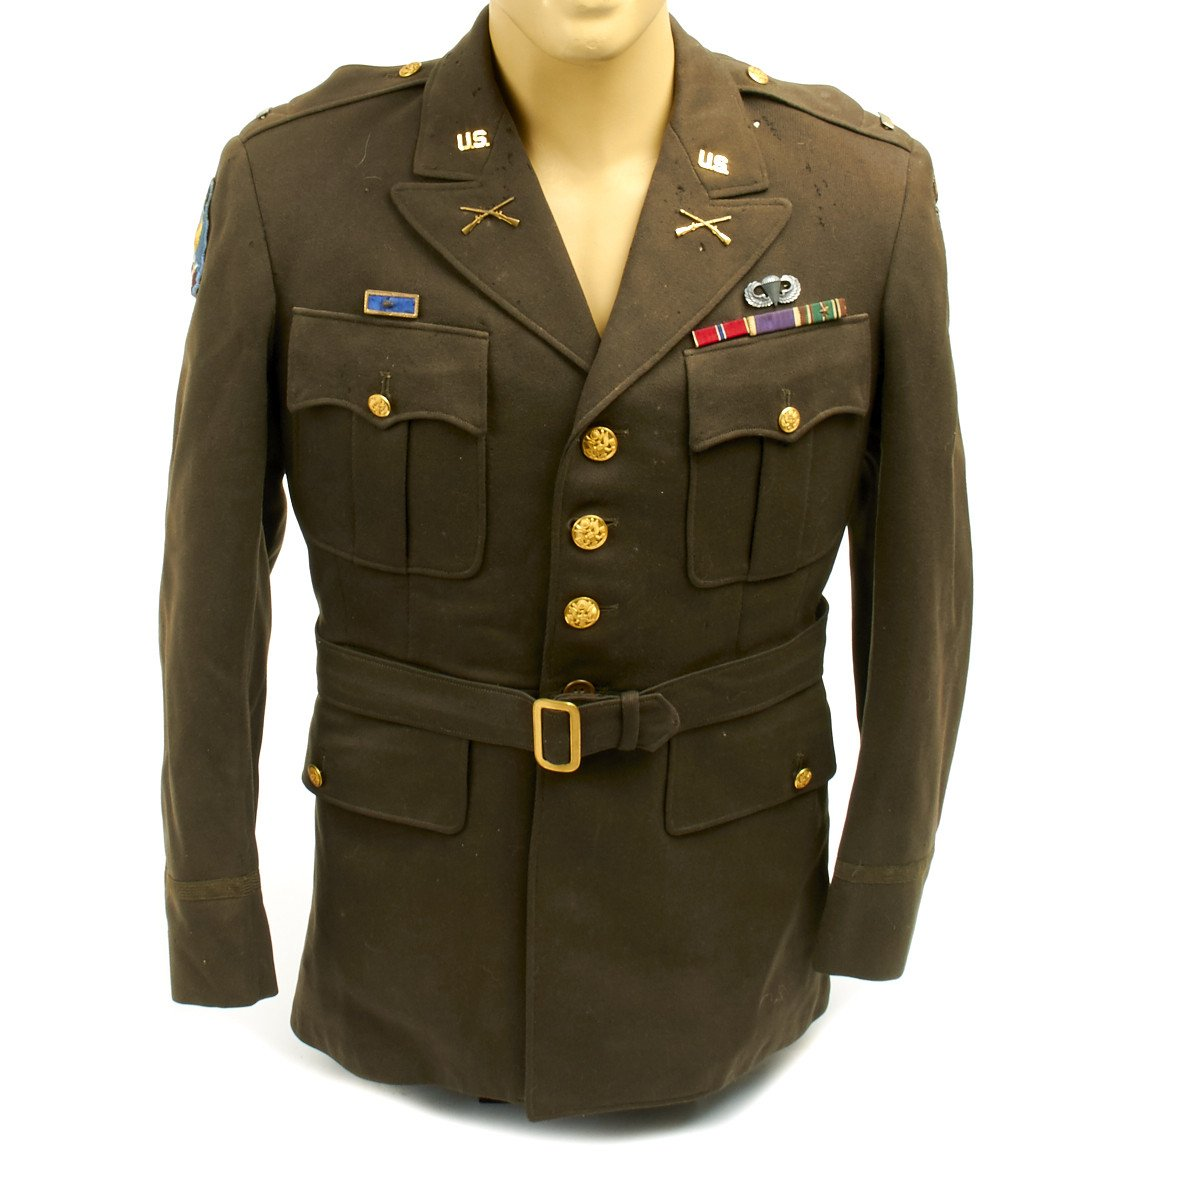 Original U S  WWII 101st Airborne Class A Uniform Jacket